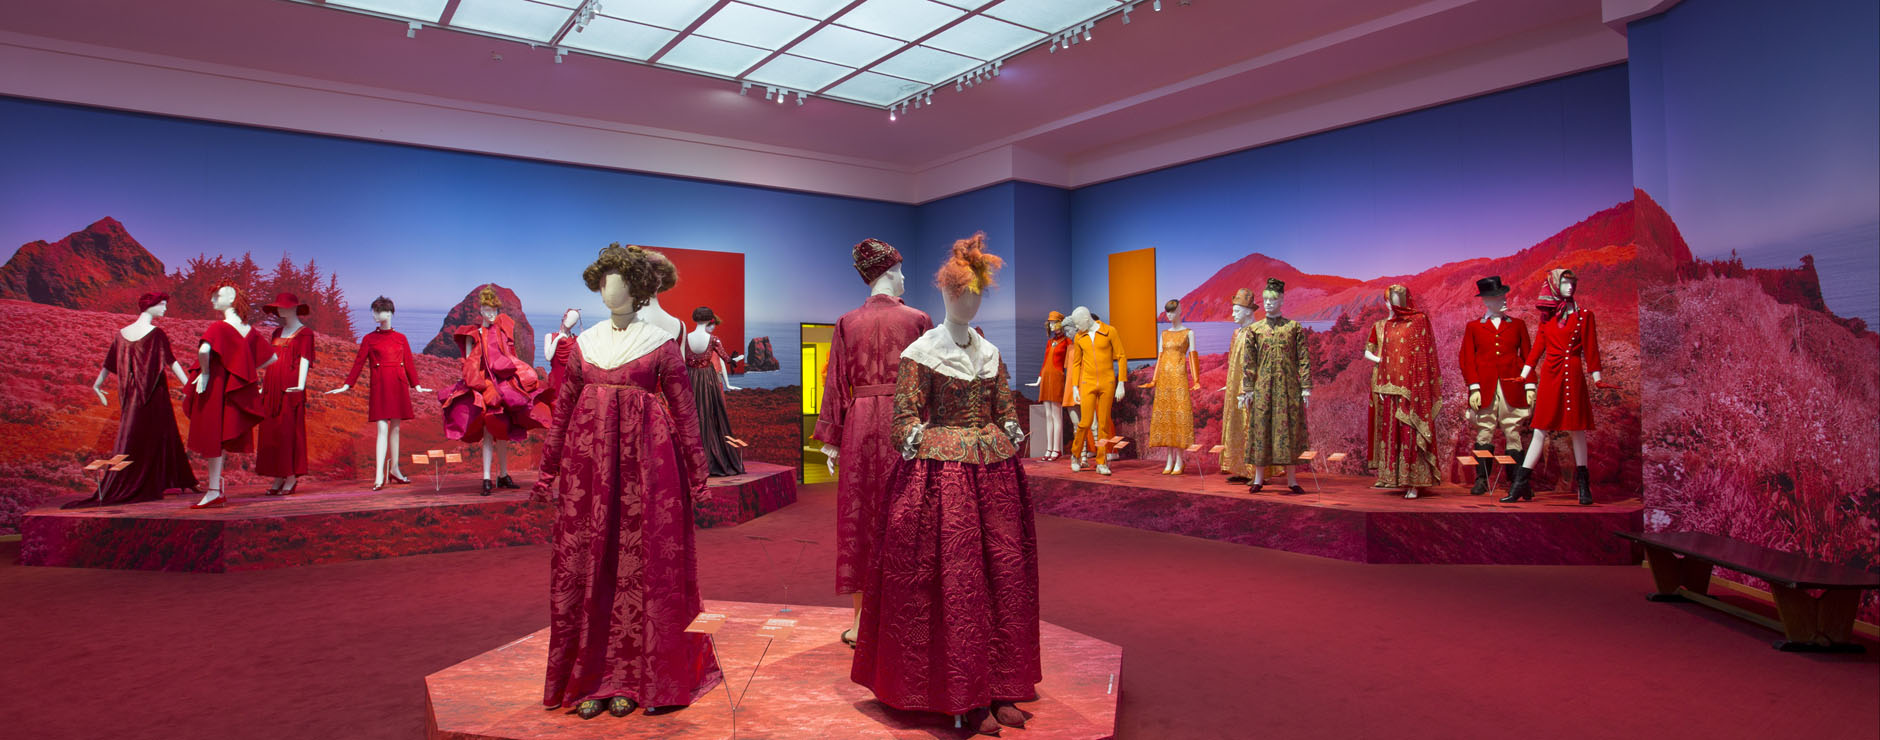 Kunstmuseum The Hague - Fashion in Colour